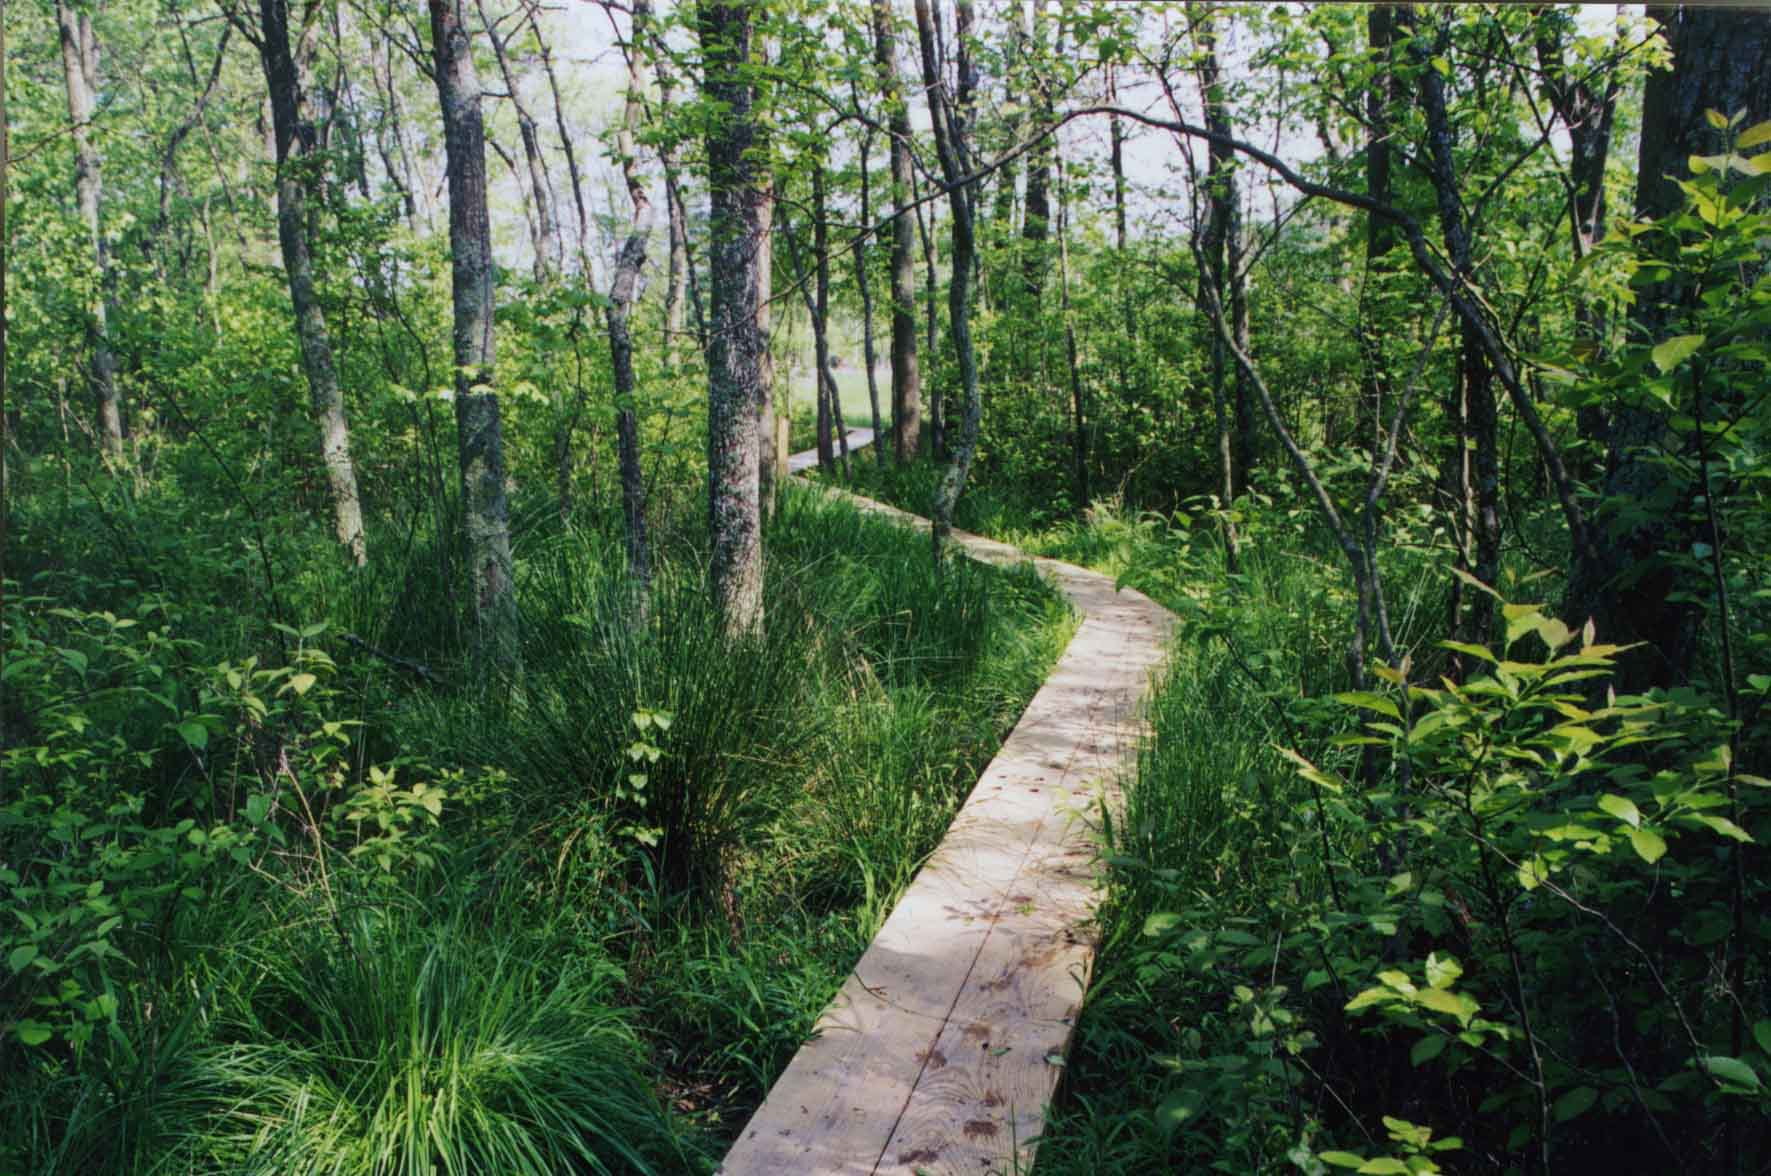 A trail in Julie J. Metz Wetlands Bank, Virginia's first approved wetlands bank - Prince William County, VA